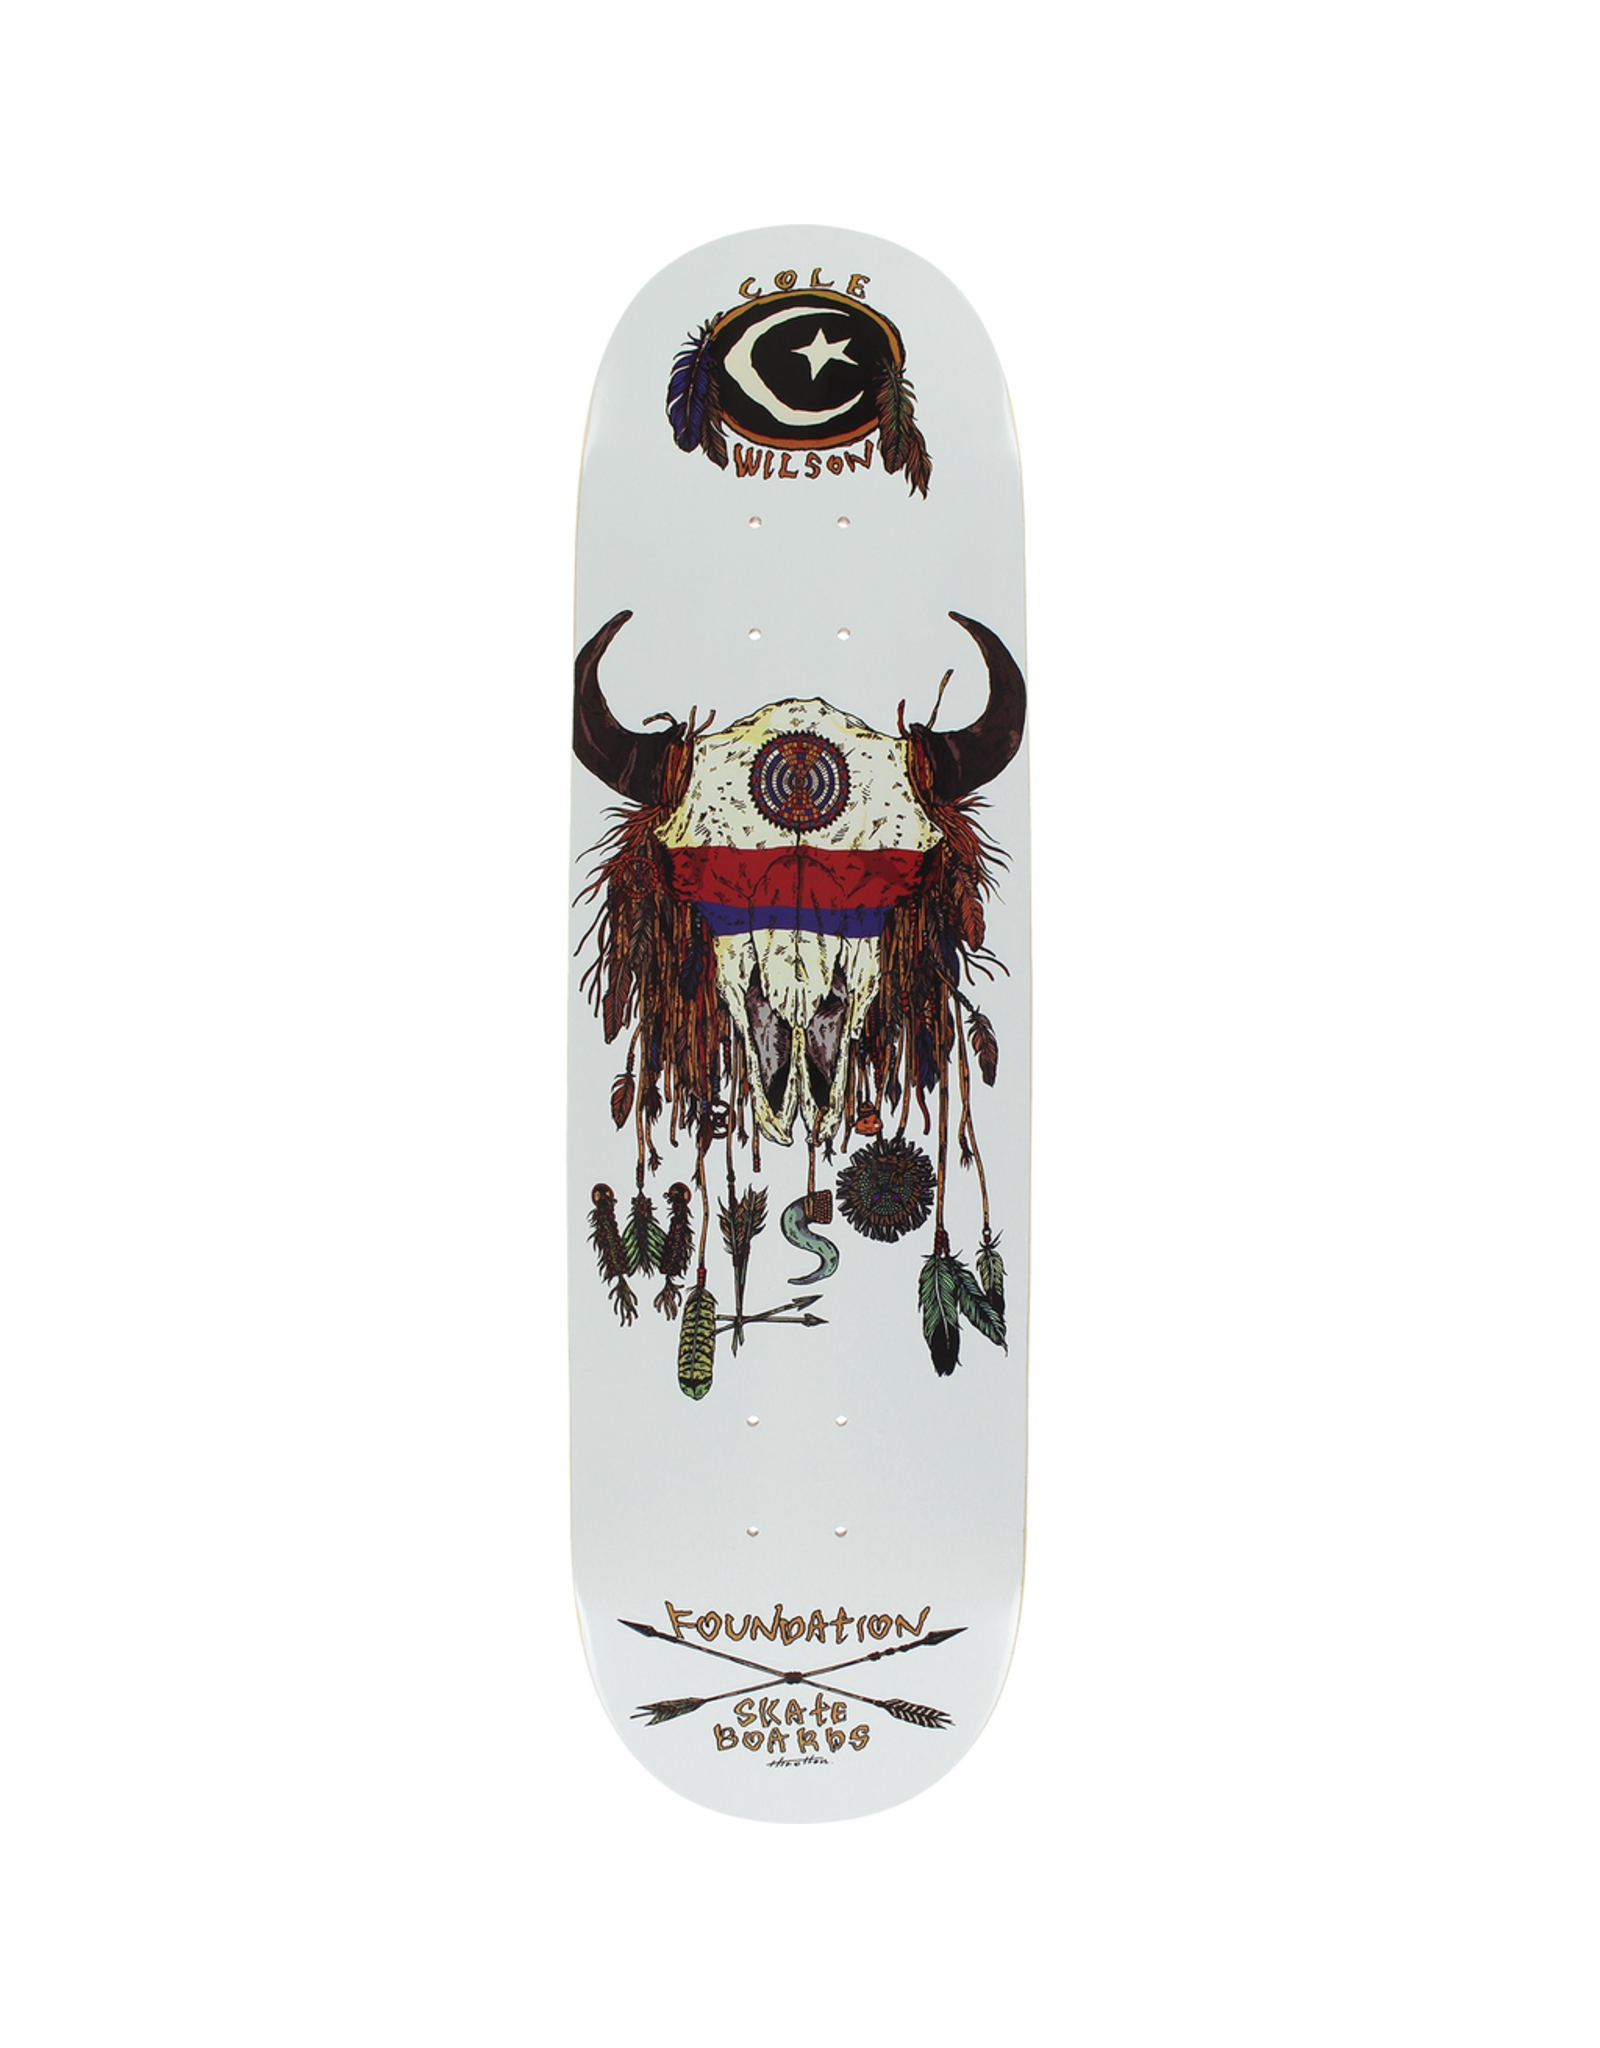 FOUNDATION FOUND WILSON BUFFALO DECK-8.5